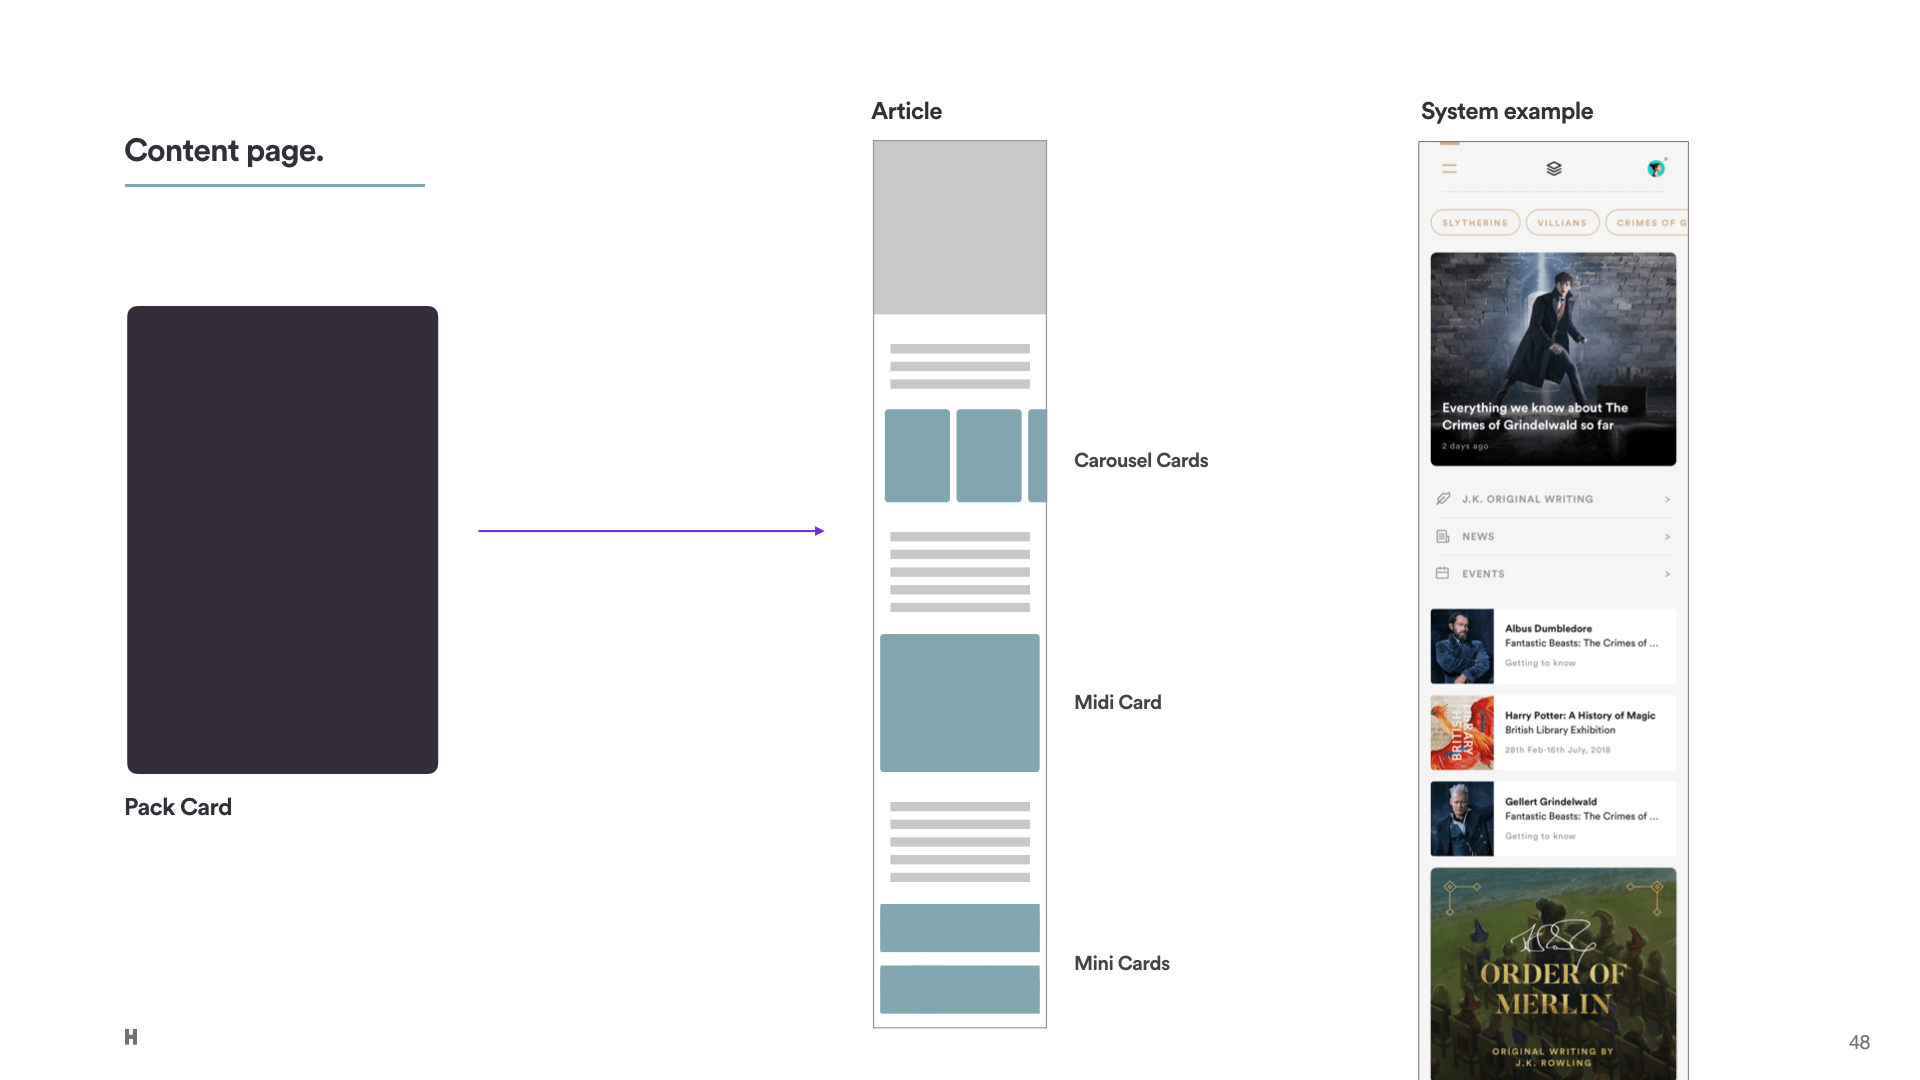 Content page modules